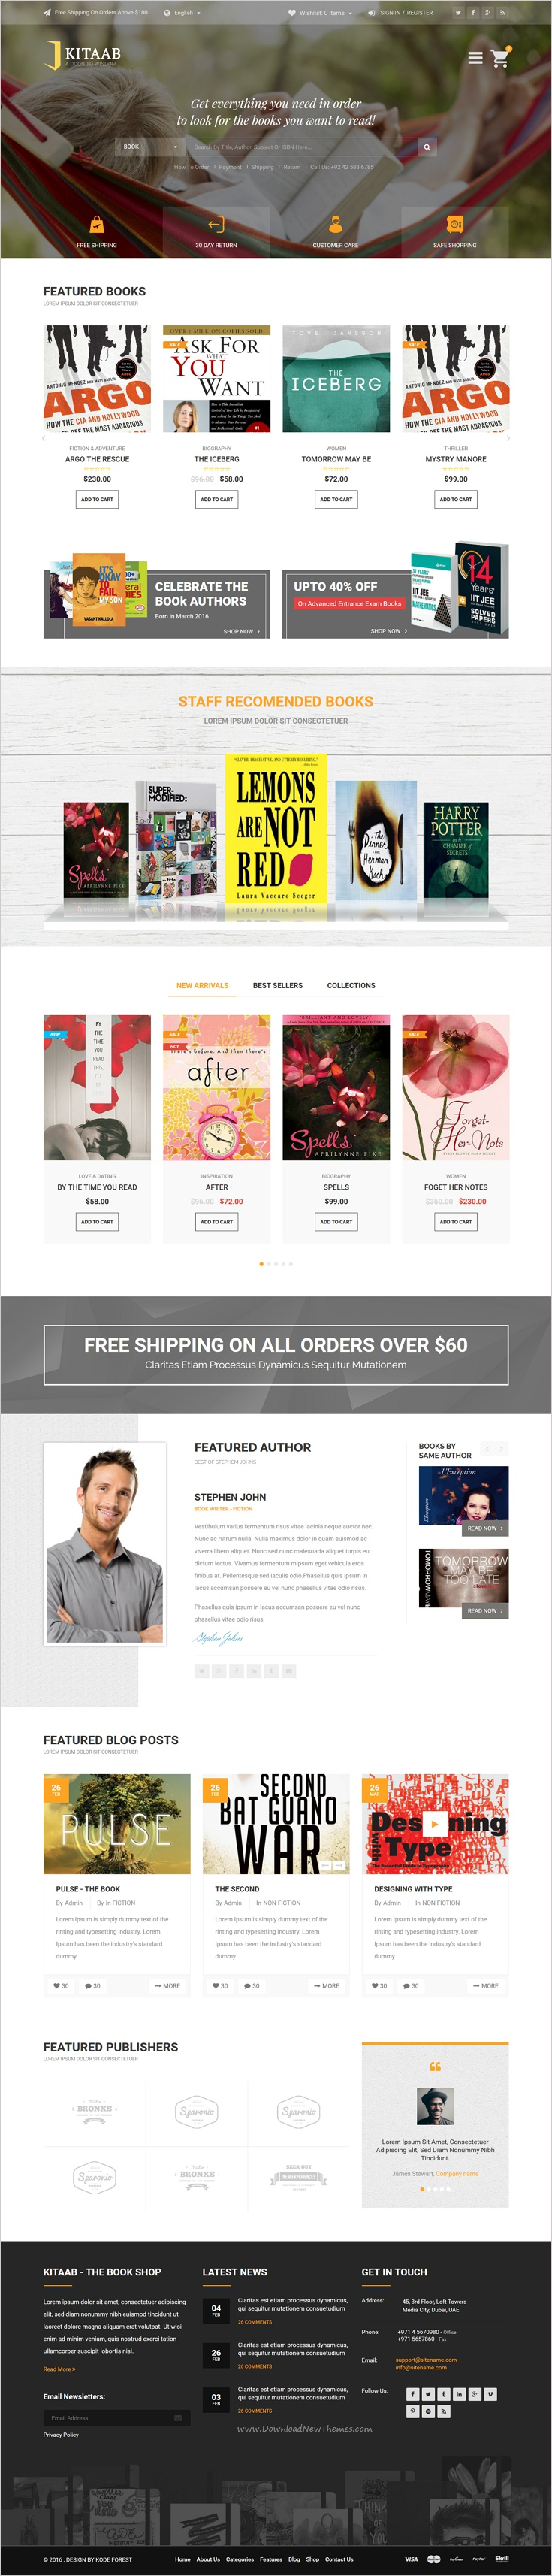 Kitaab Is Very Beautiful Responsive Bootstrap Html Template For